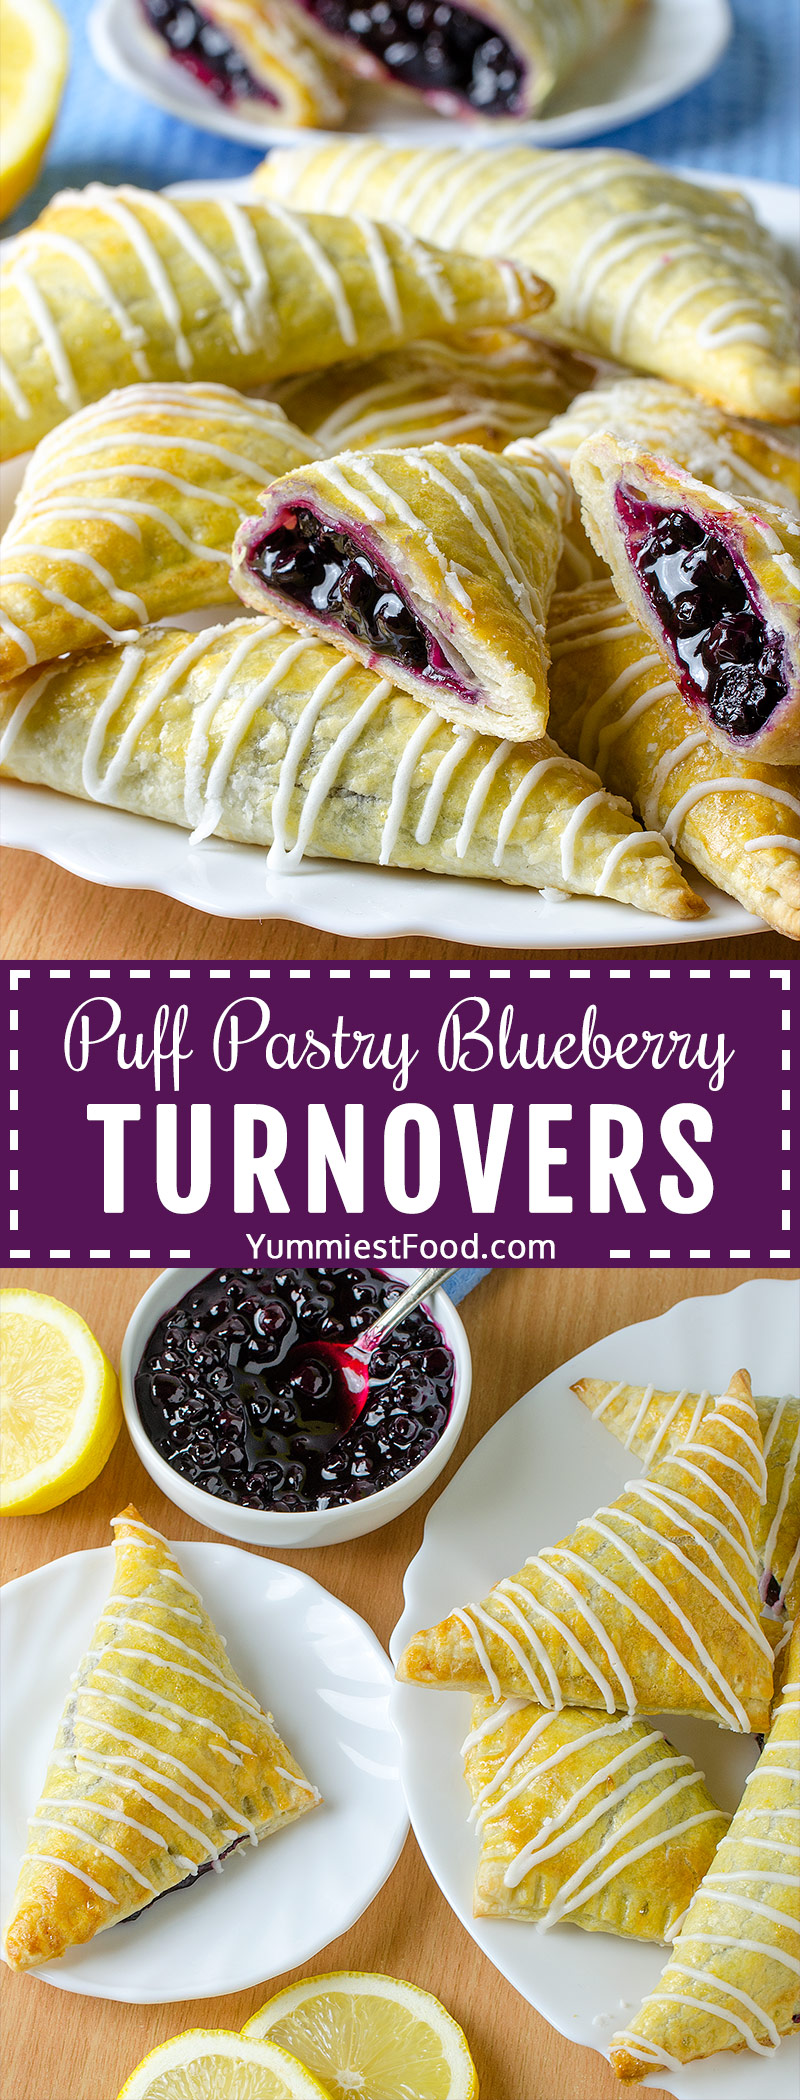 These Puff Pastry Blueberry Turnovers are light, flaky, filled with blueberry filling then drizzled with lemon glaze